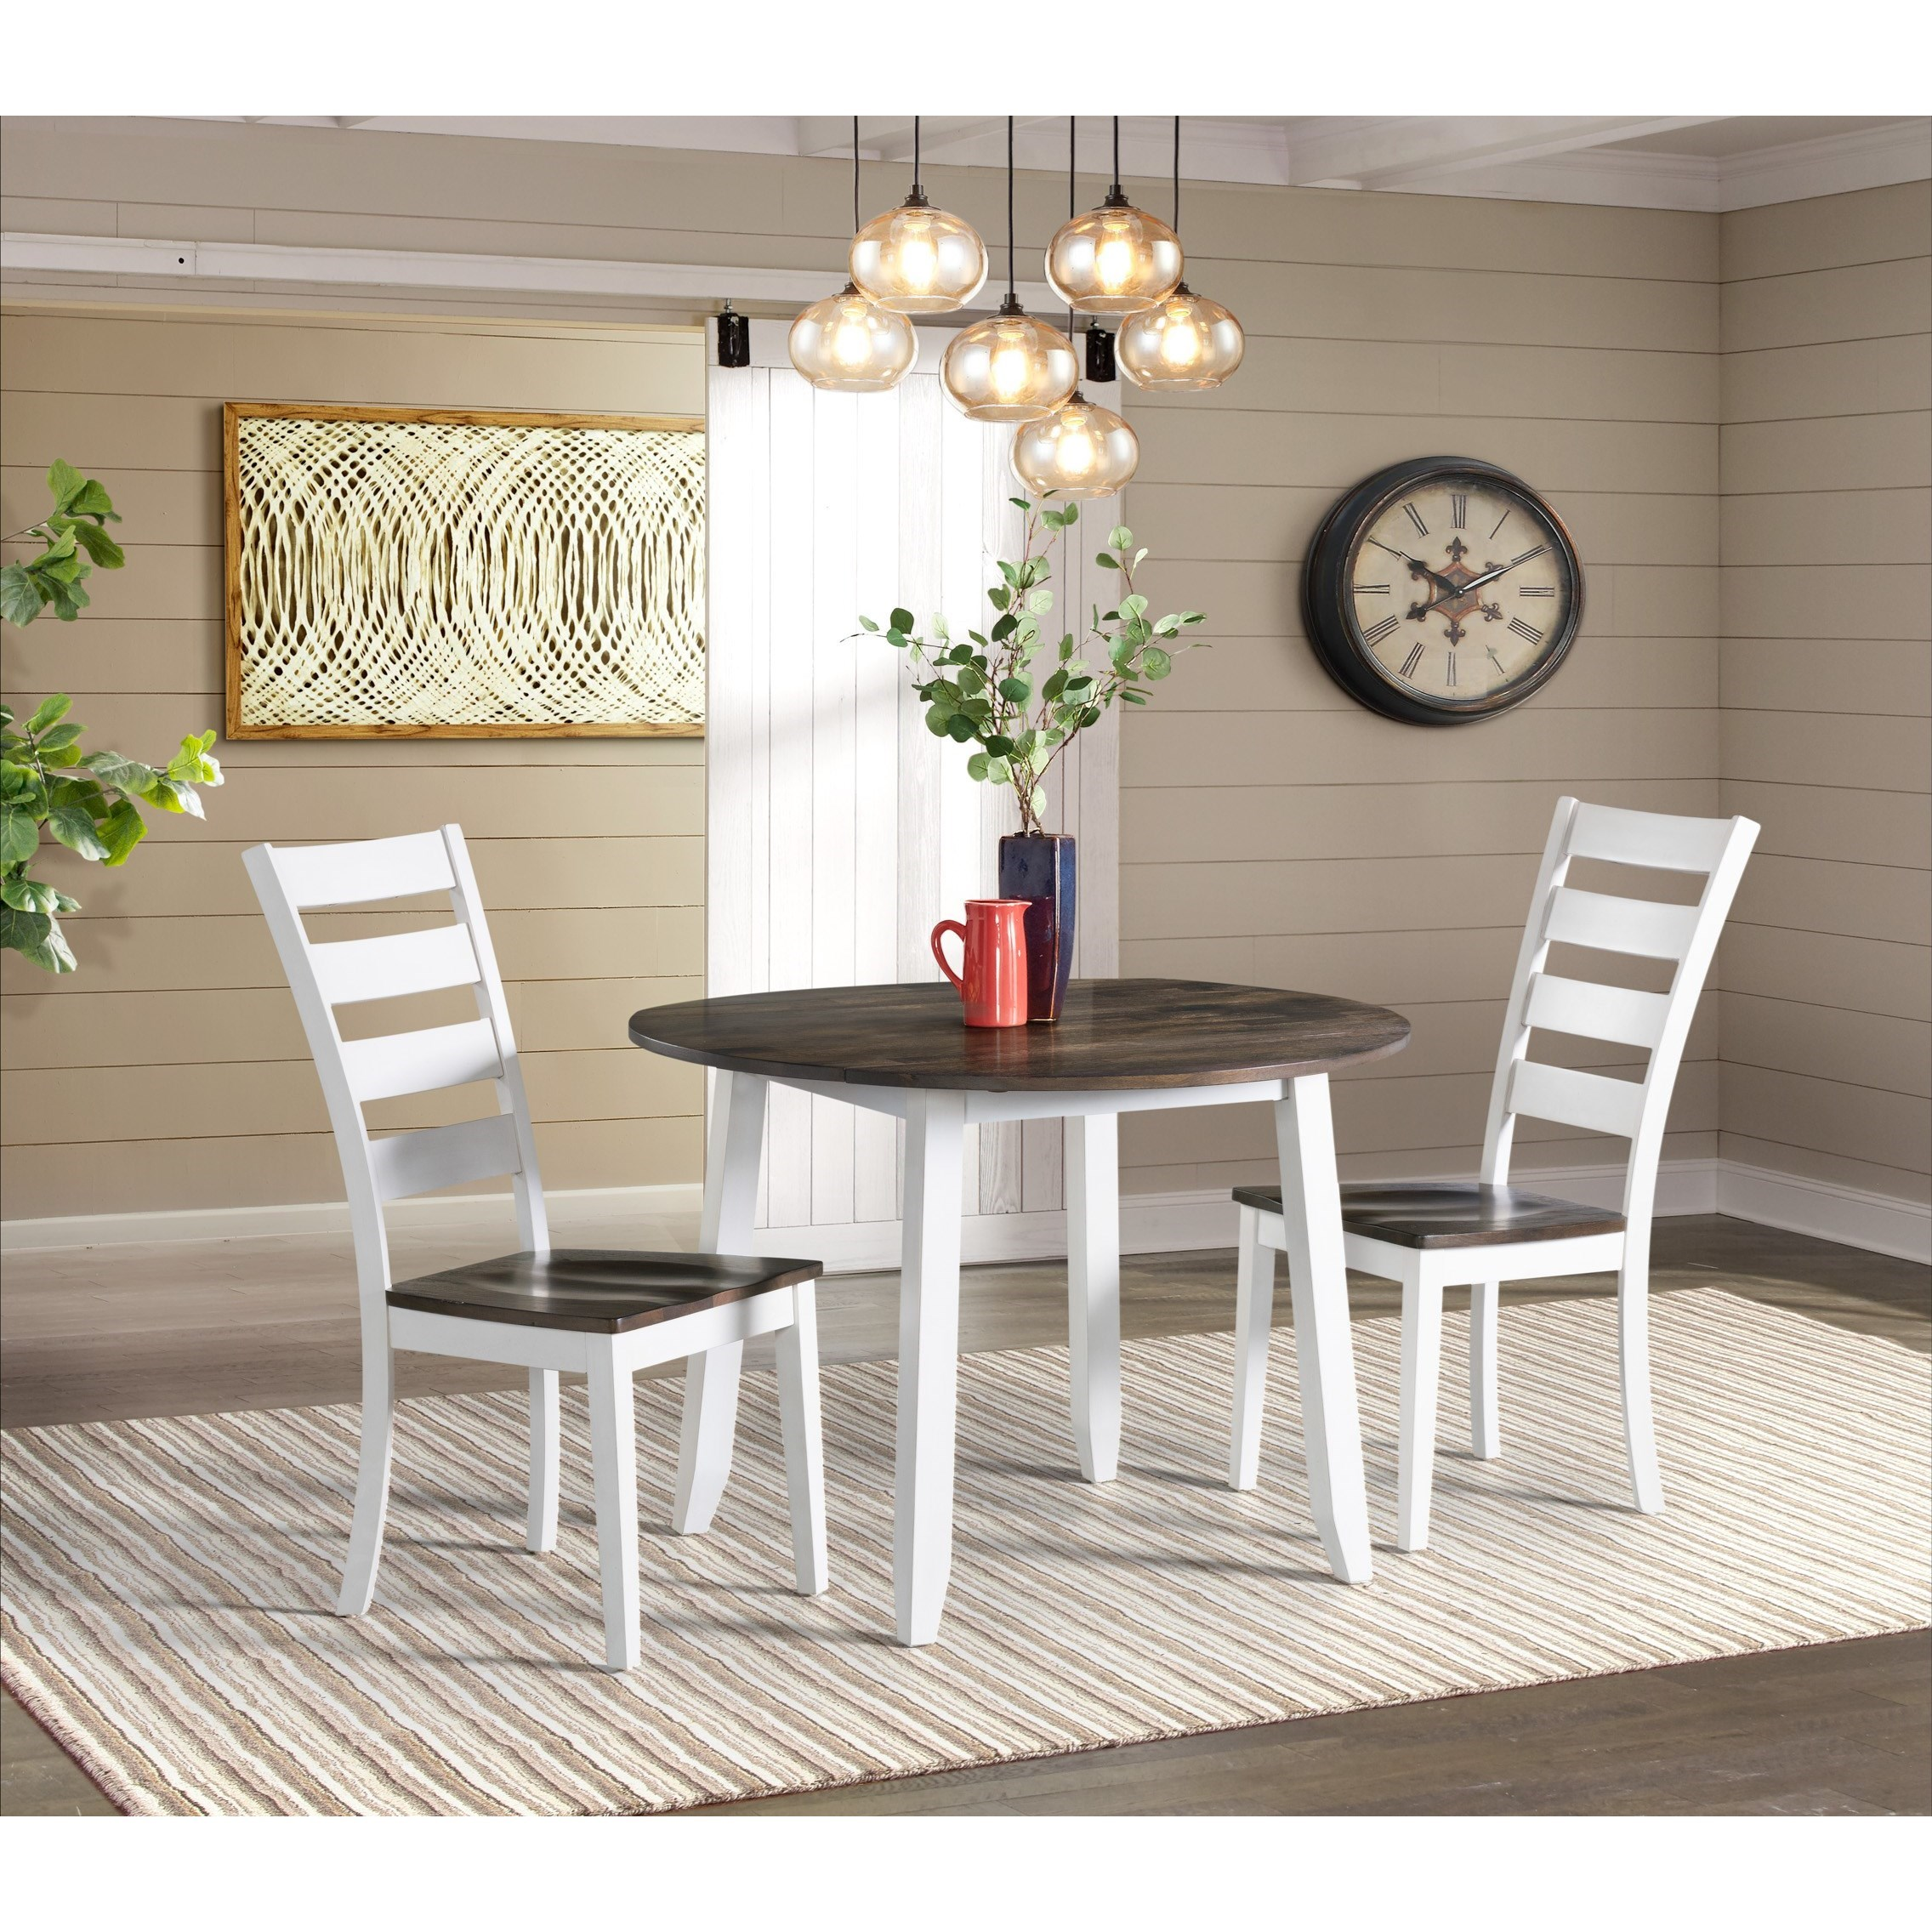 Kona Drop Leaf Dining Table and Chair Set by Intercon at Dinette Depot